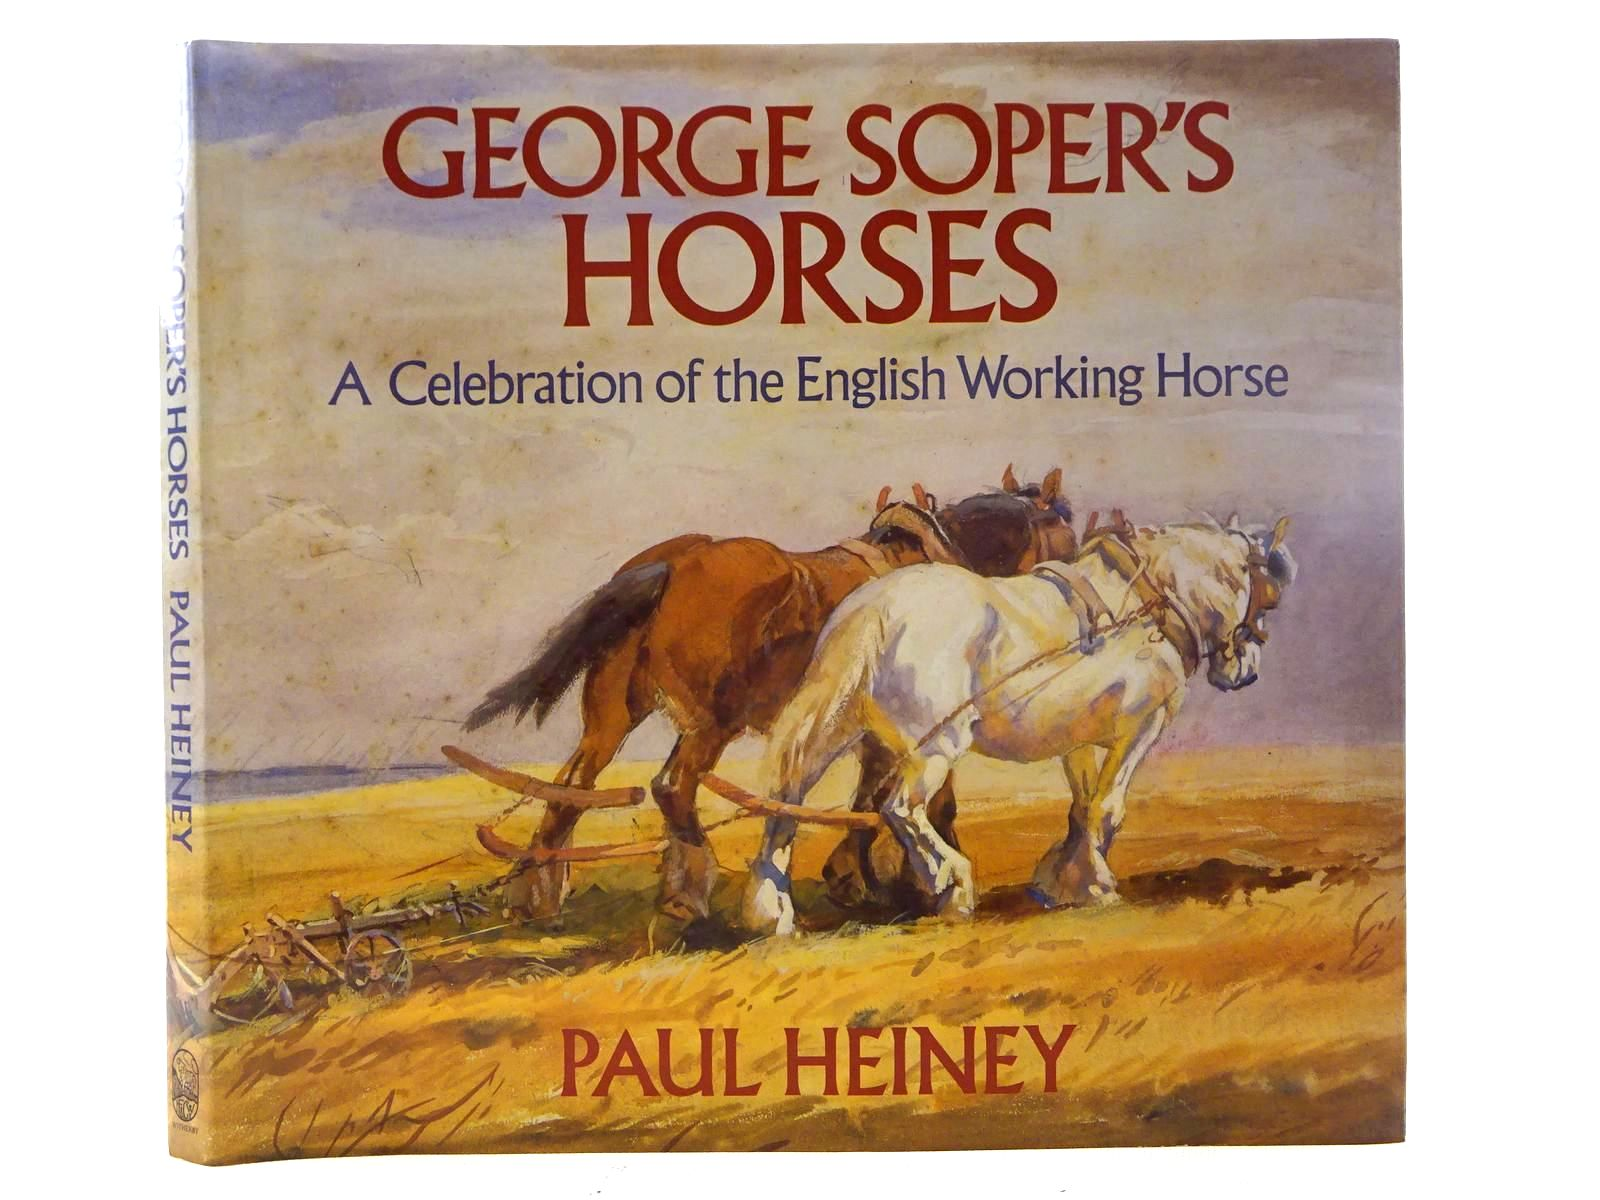 Photo of GEORGE SOPER'S HORSES written by Heiney, Paul illustrated by Soper, George published by H.F. & G. Witherby Ltd. (STOCK CODE: 1610667)  for sale by Stella & Rose's Books